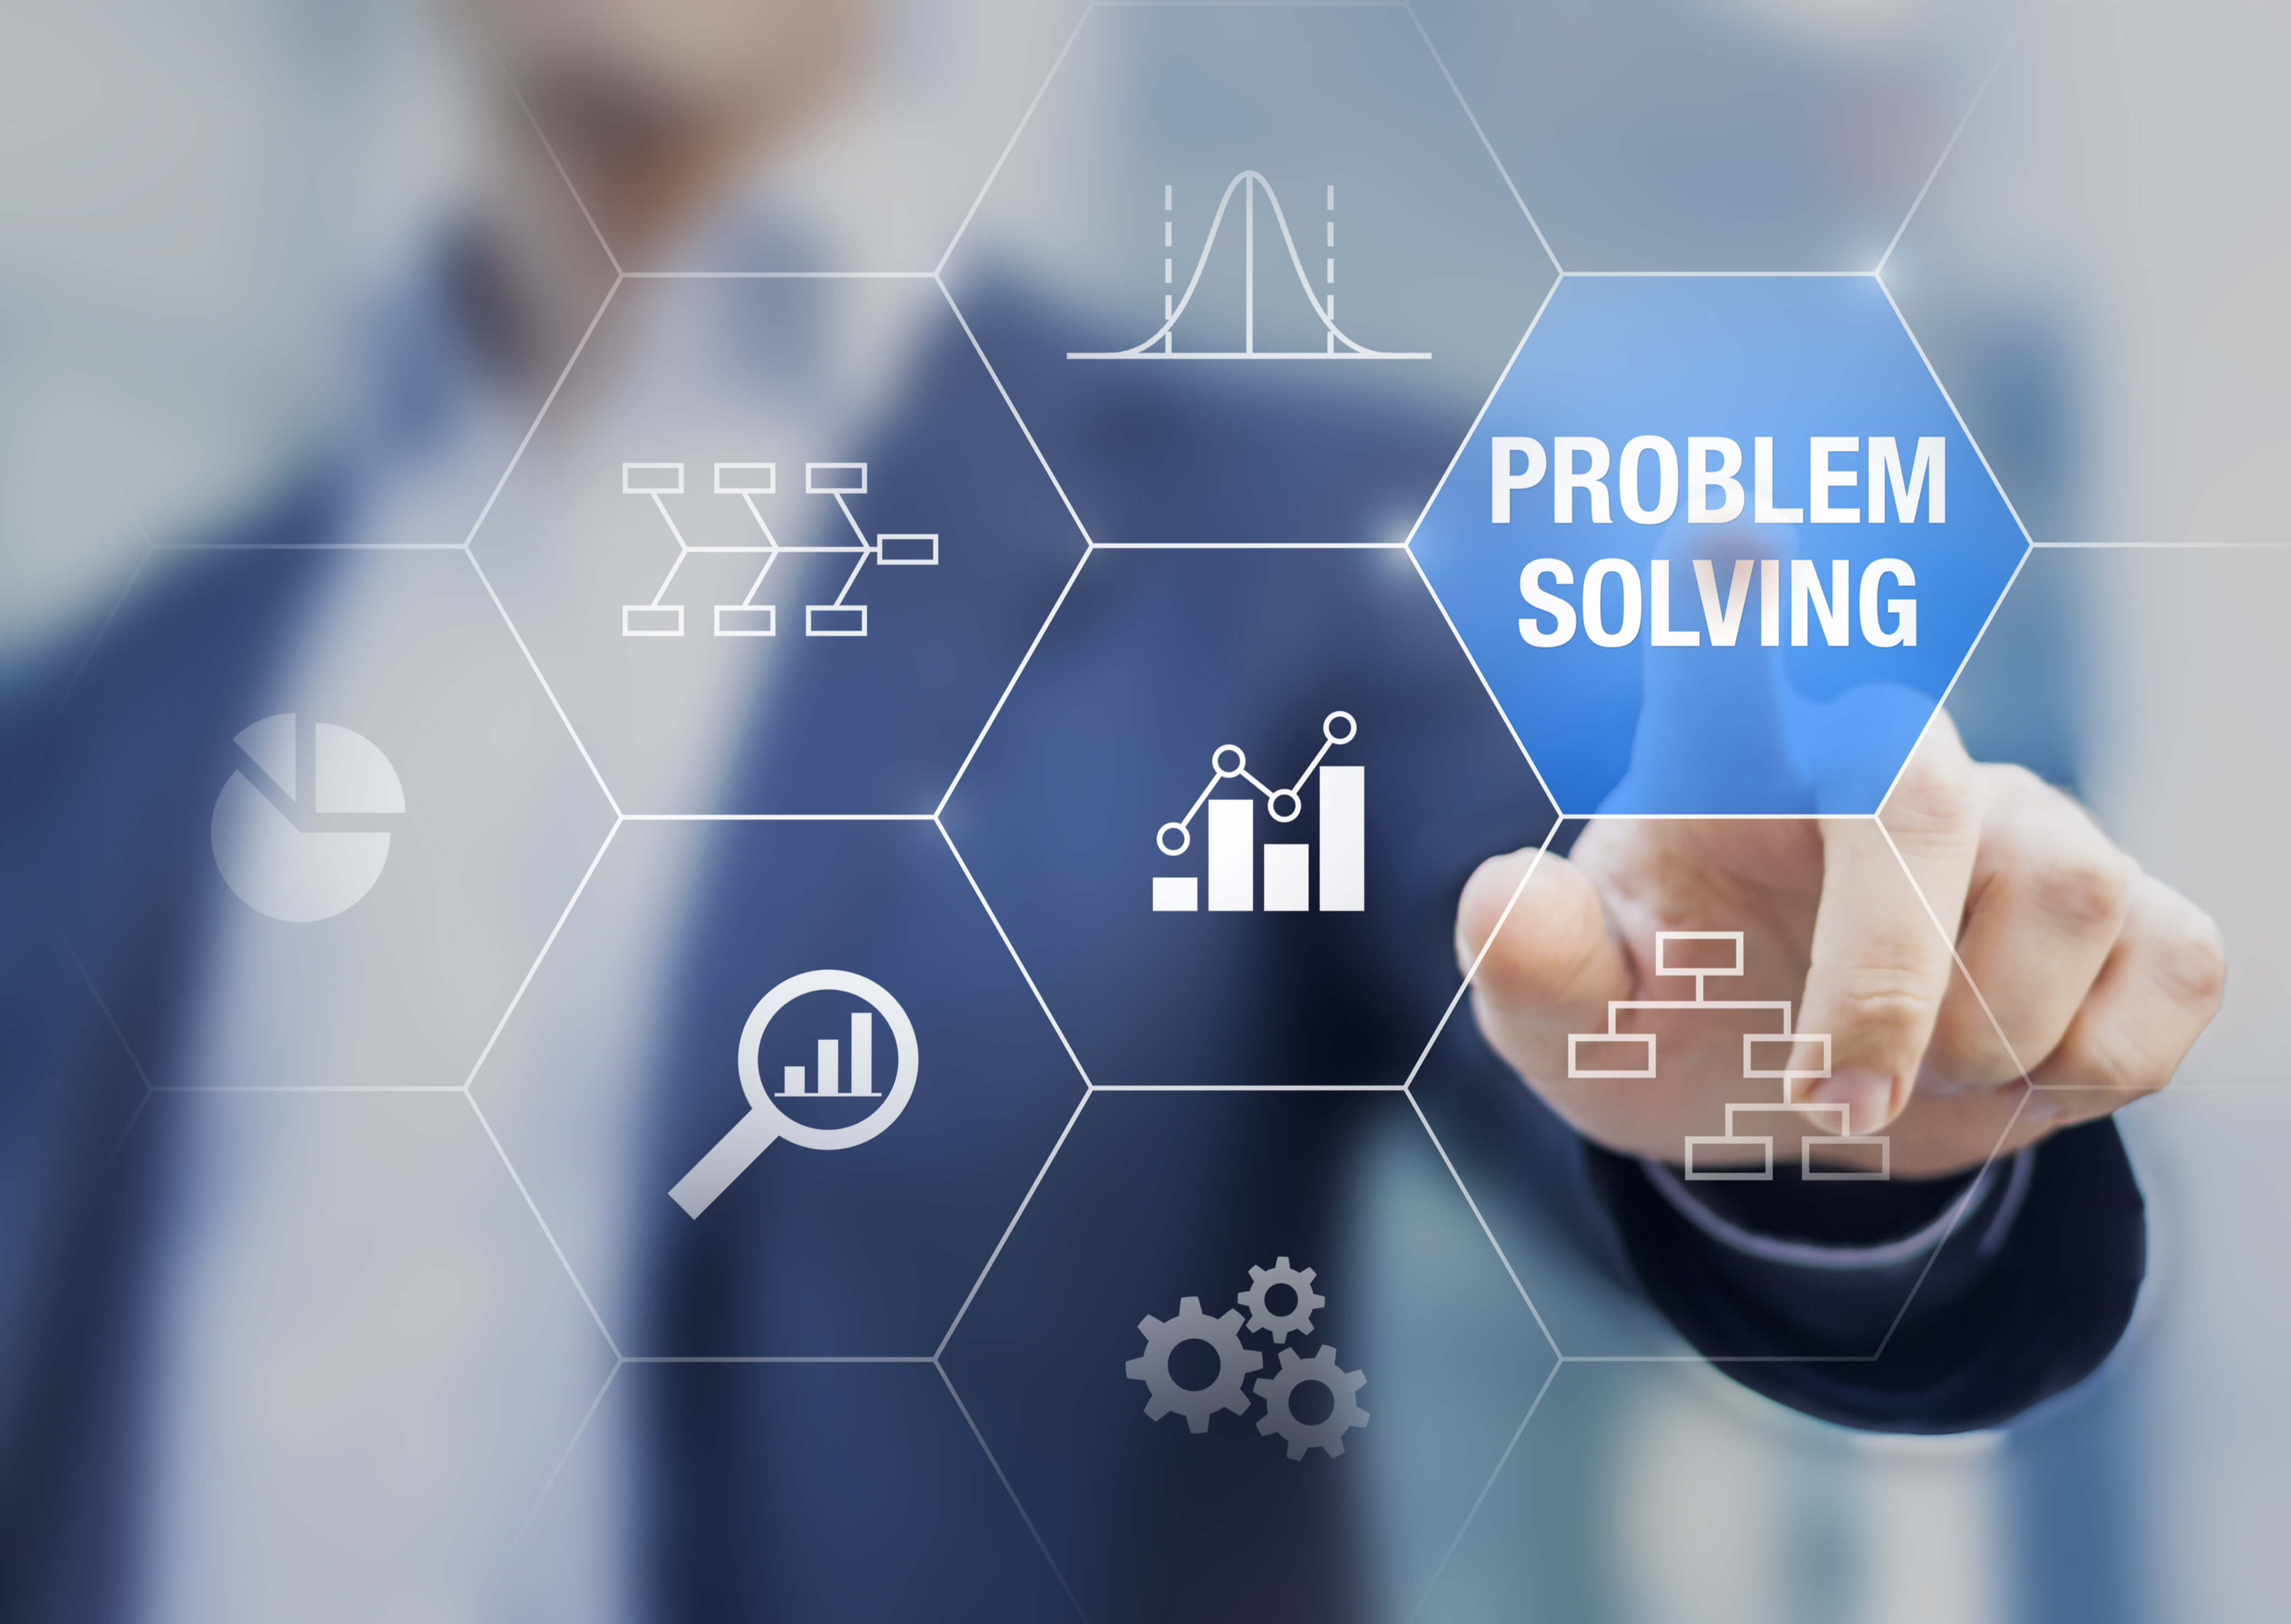 Man pointing to Problem Solving